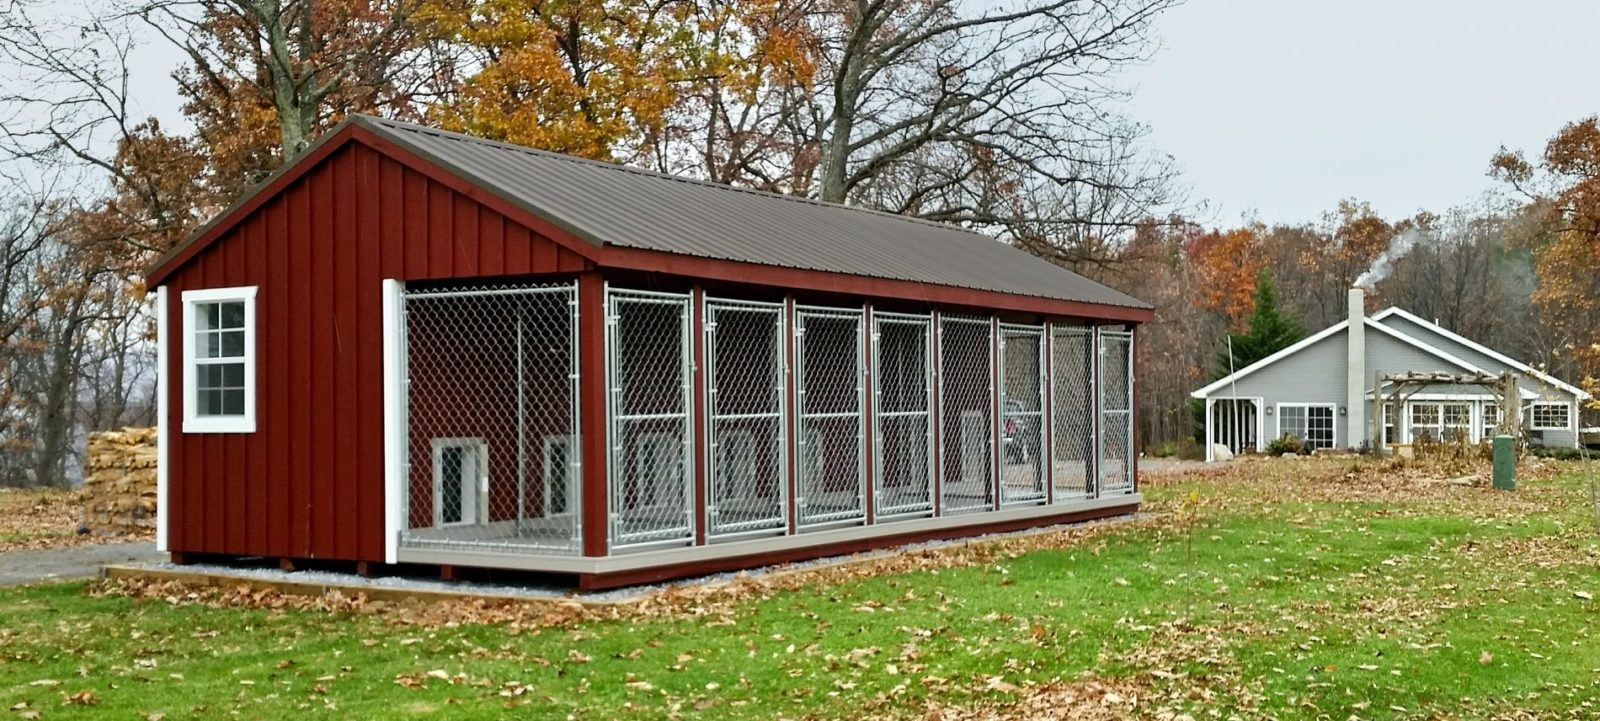 commercial insulated dog kennel house